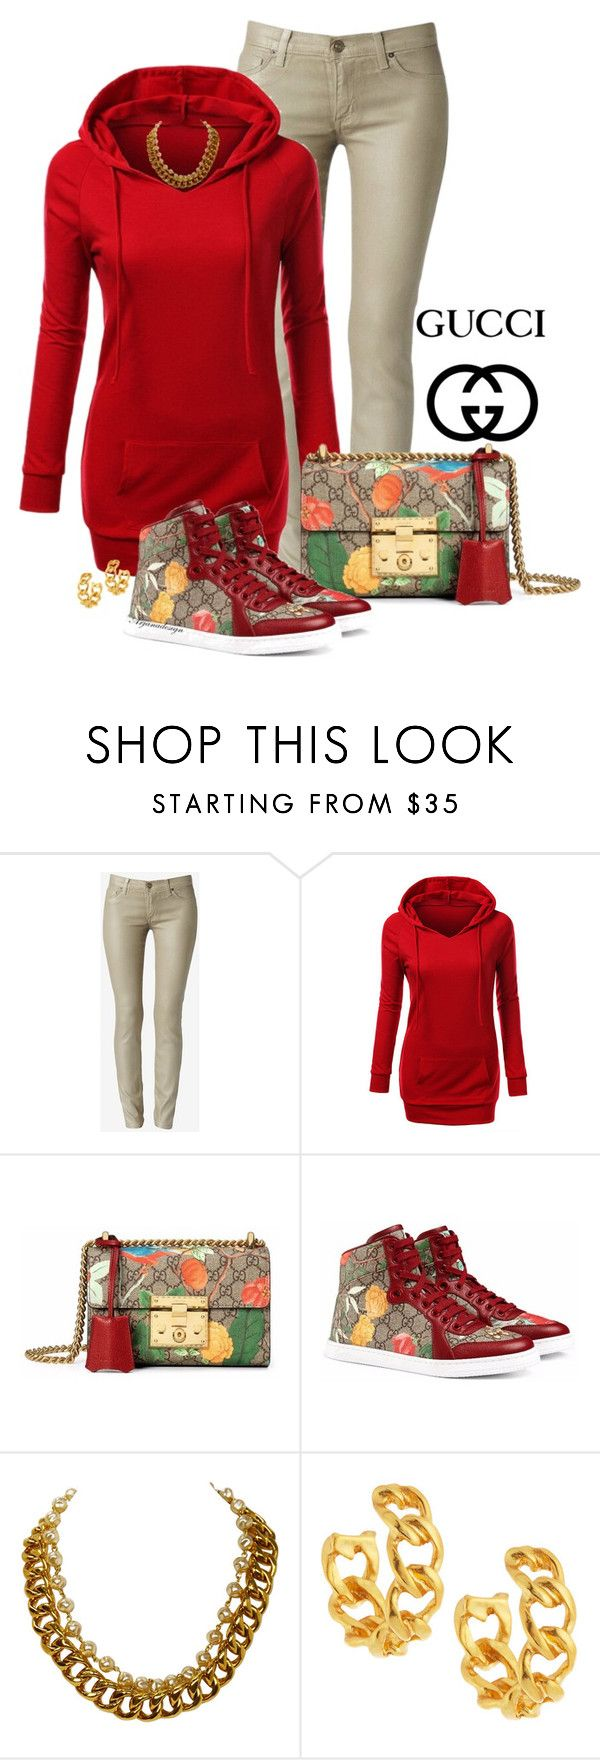 """""""GUCCI TIAN COLLECTION"""" by arjanadesign ❤ liked on Polyvore featuring Gucci, Chanel, Kenneth Jay Lane, women's clothing, women, female, woman, misses and juniors"""